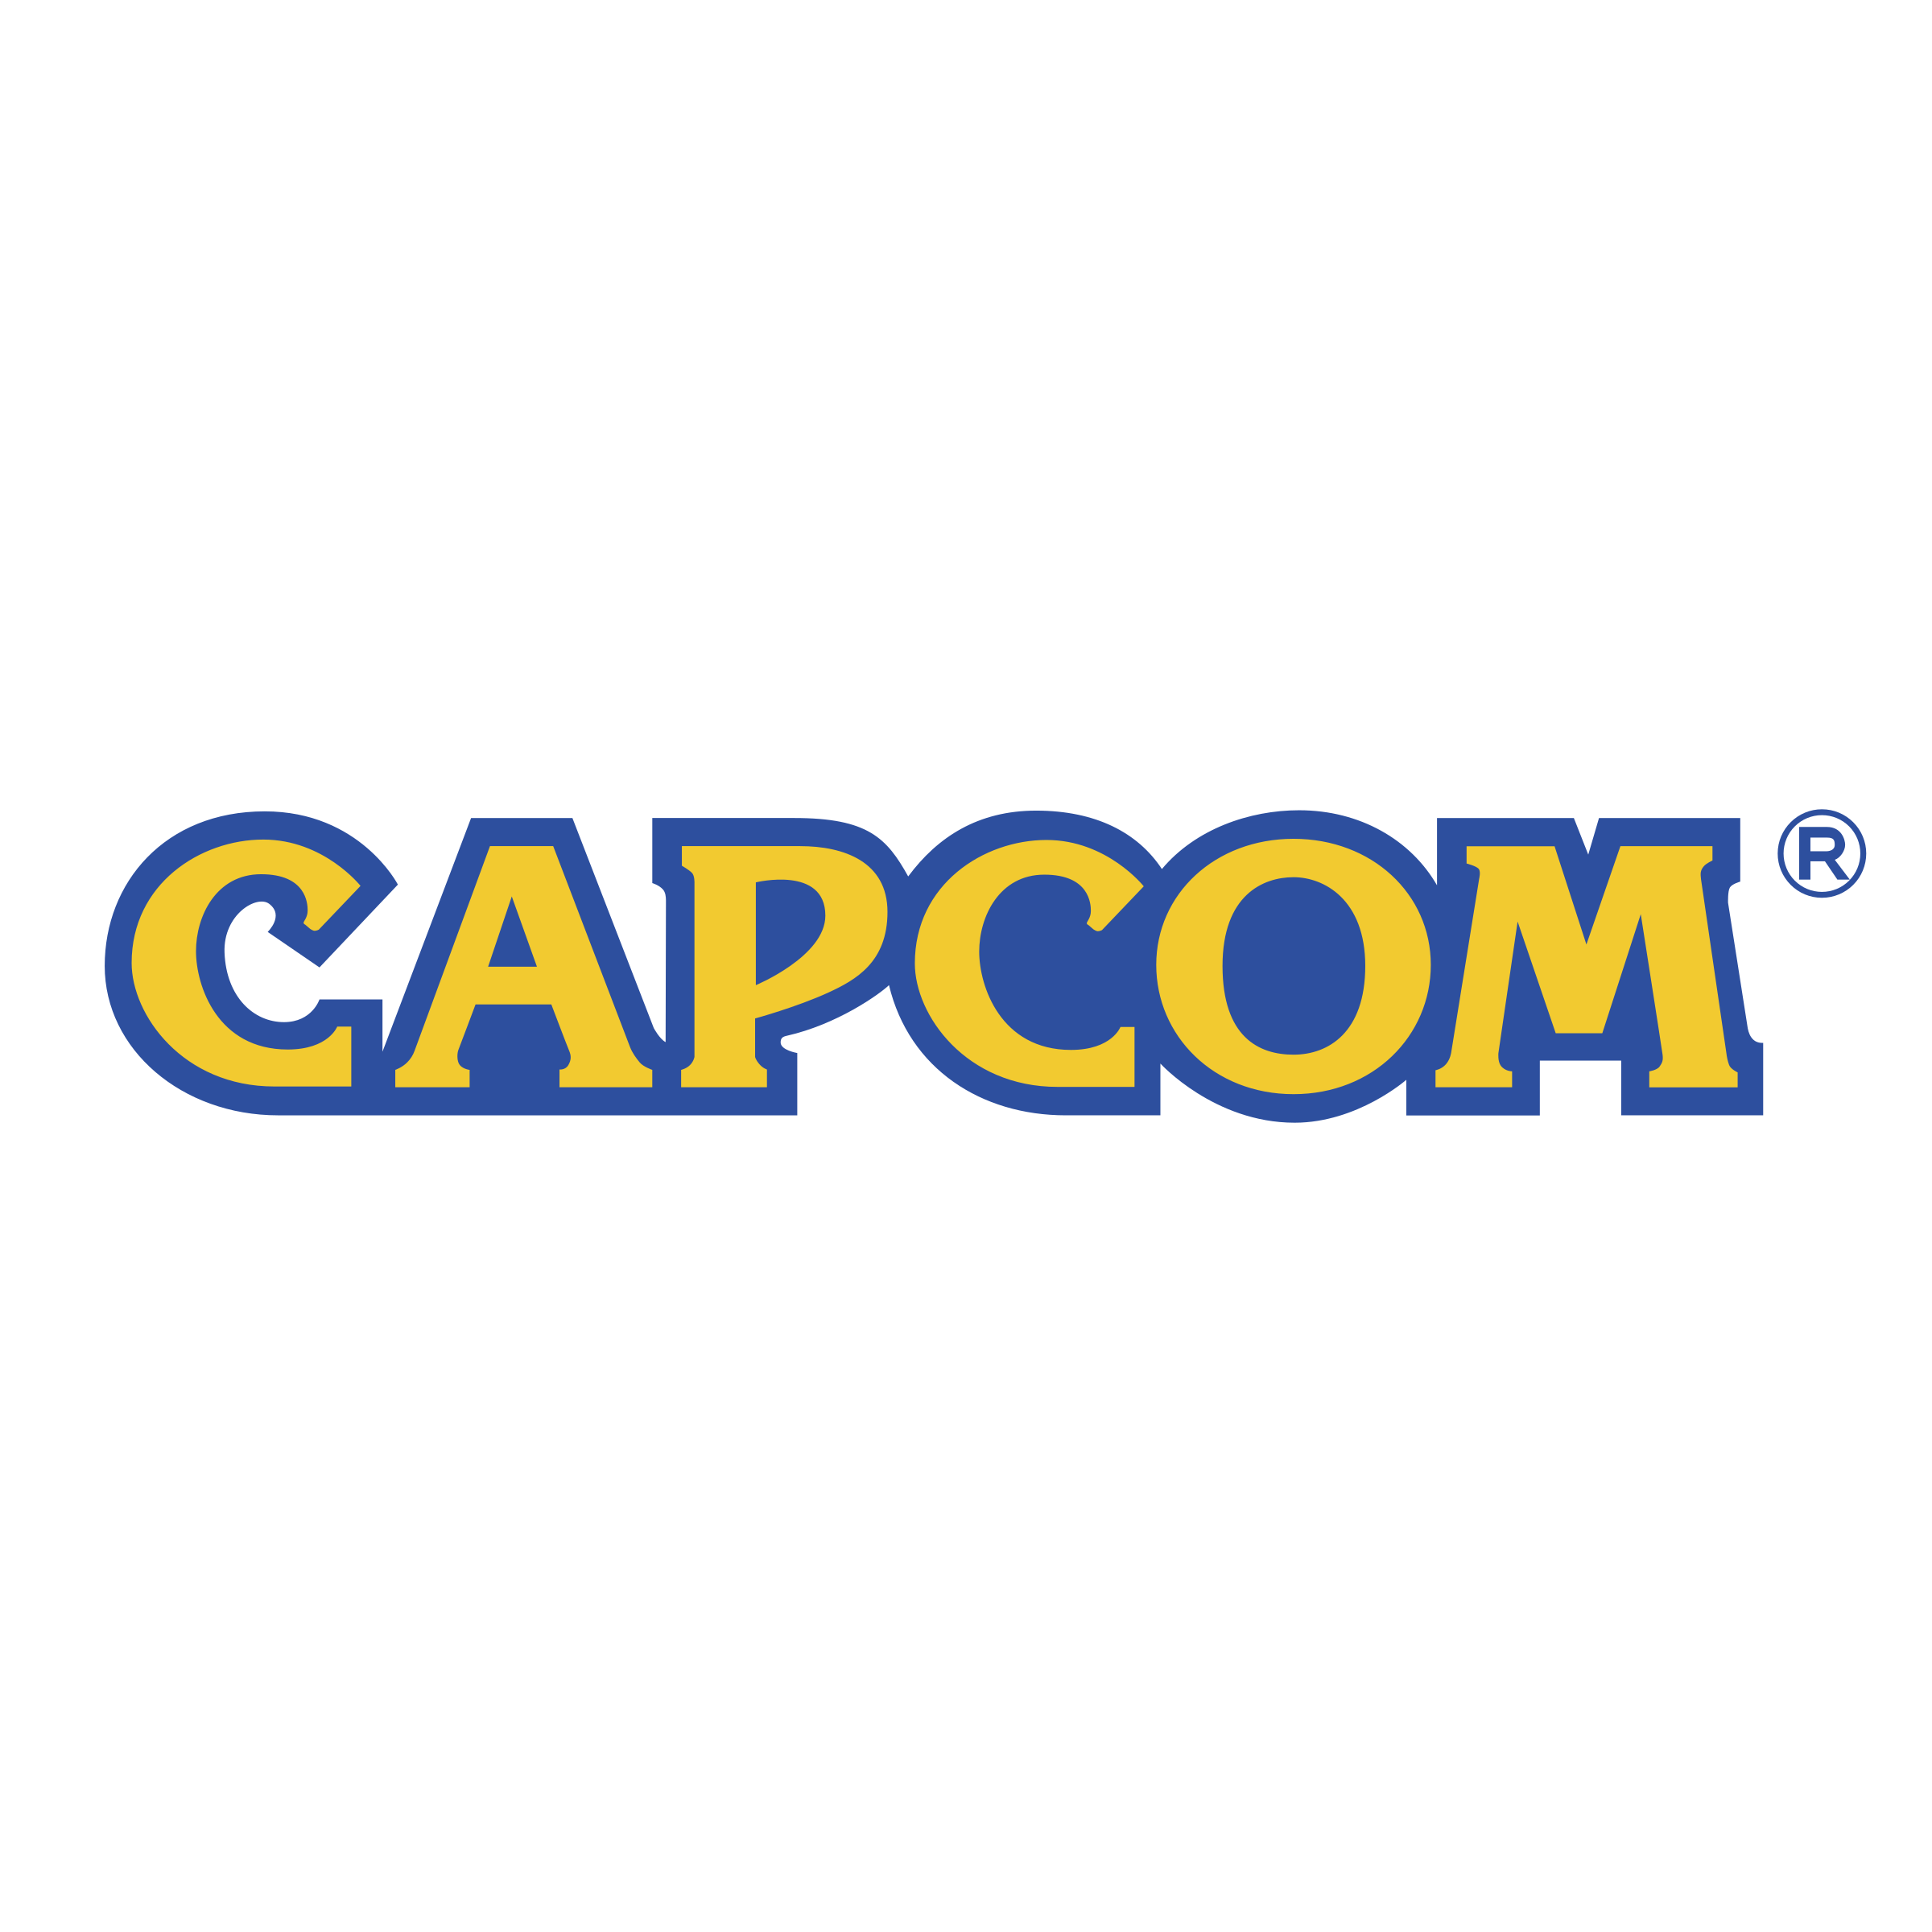 Capcom Logo PNG Transparent & SVG Vector.